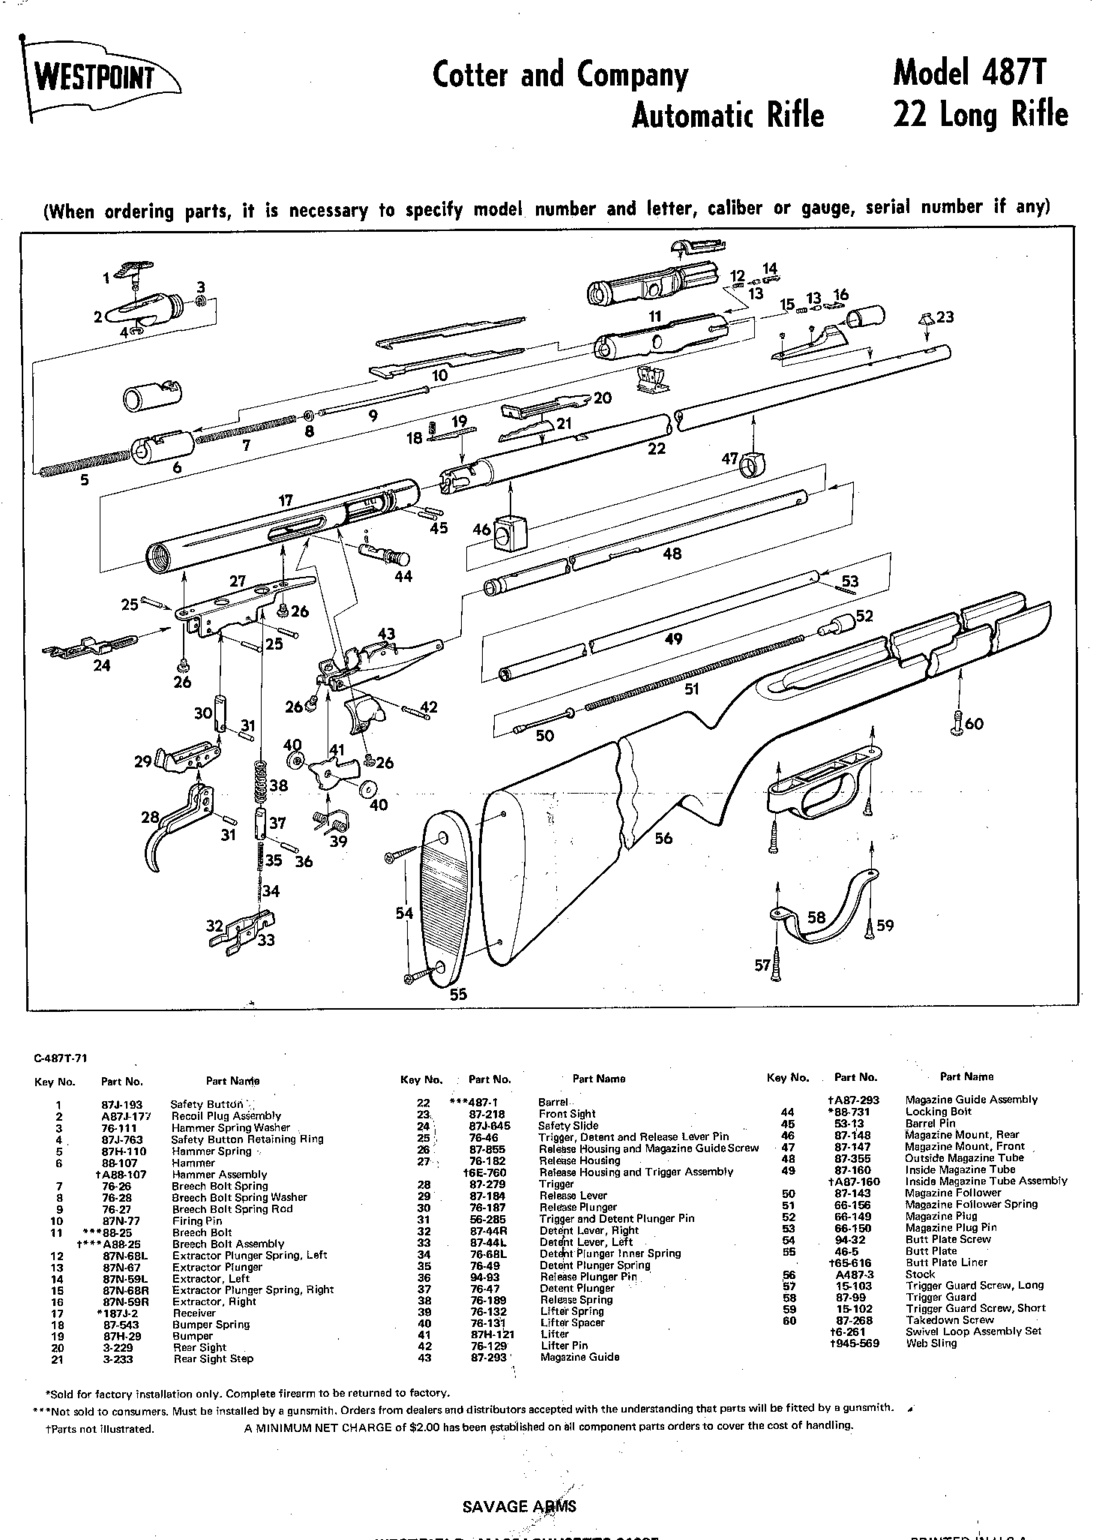 ruger pistol parts diagram jeep cj dash wiring the 10 22 complete owner 39s and assembly guide